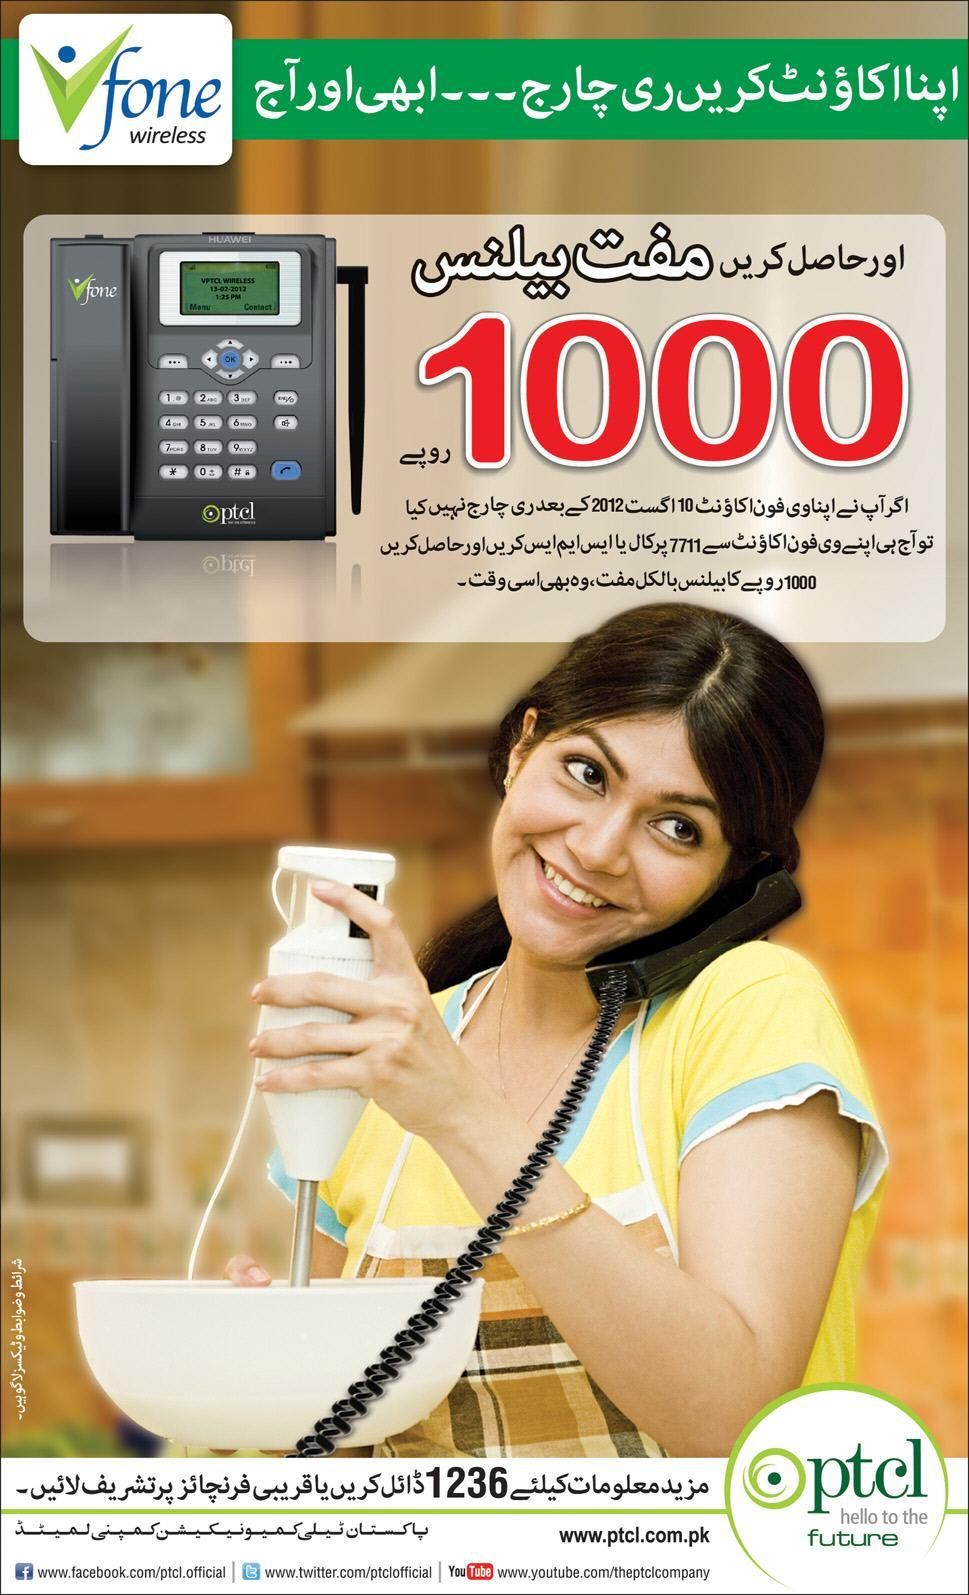 PTCL Free Balance of Rs. 1000 on Vfone Reconnect Offer